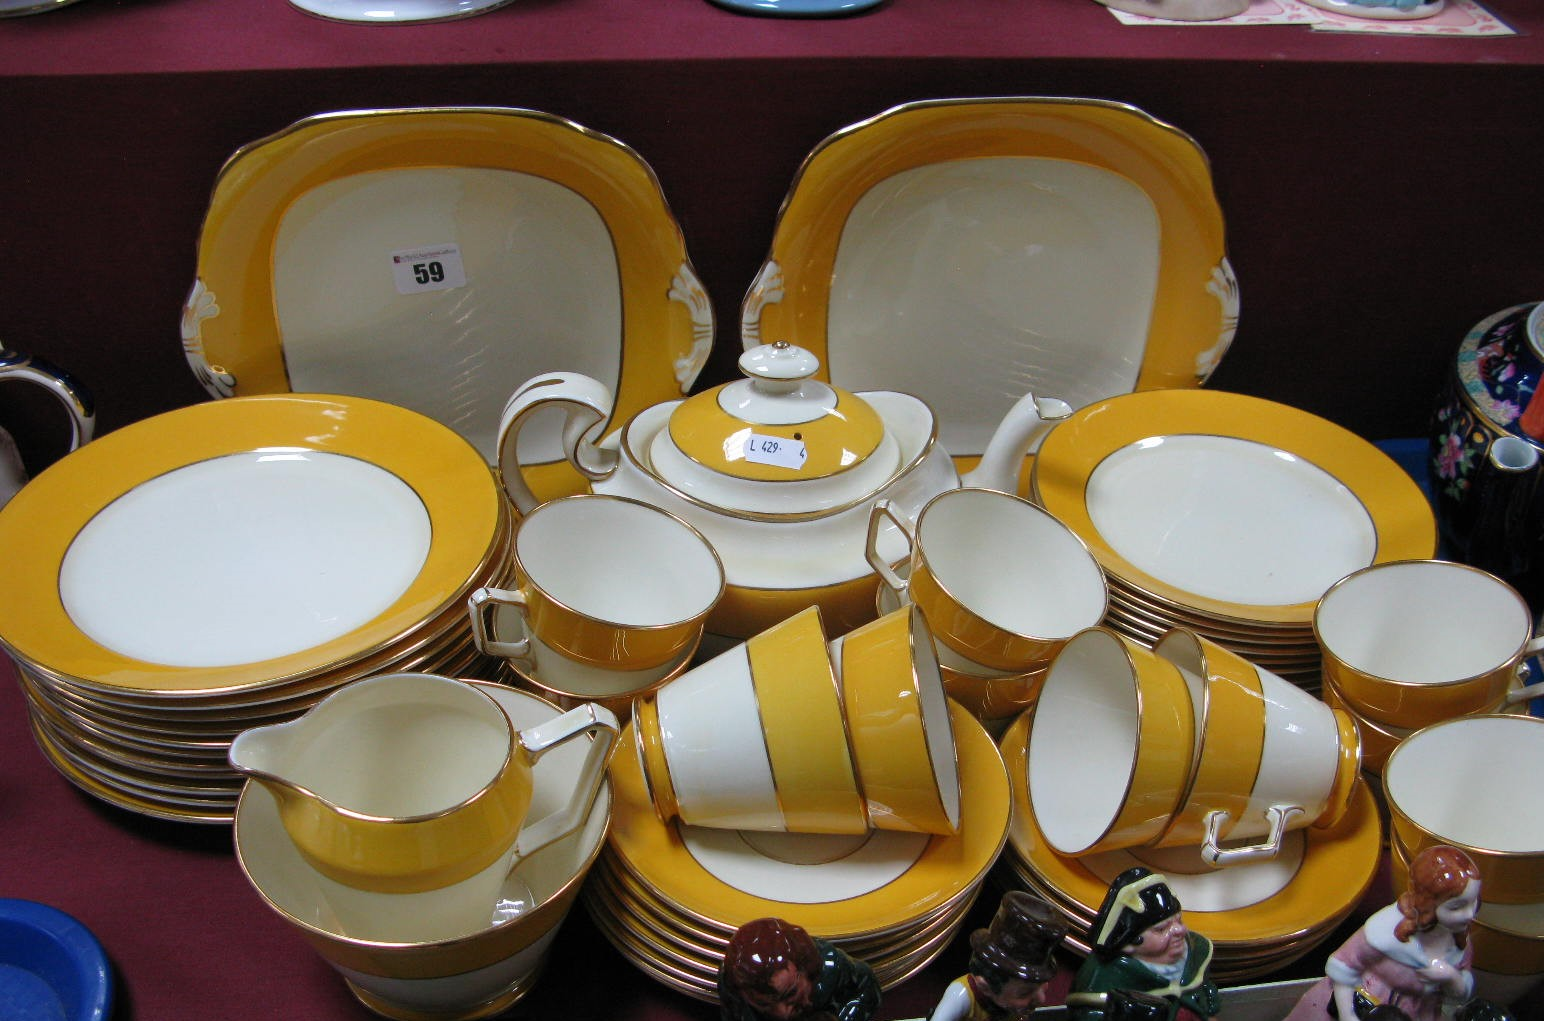 Lot 59 - Grosvenor China Ye Old English Table Ware, of approximately fifty one pieces with mustard and gilt